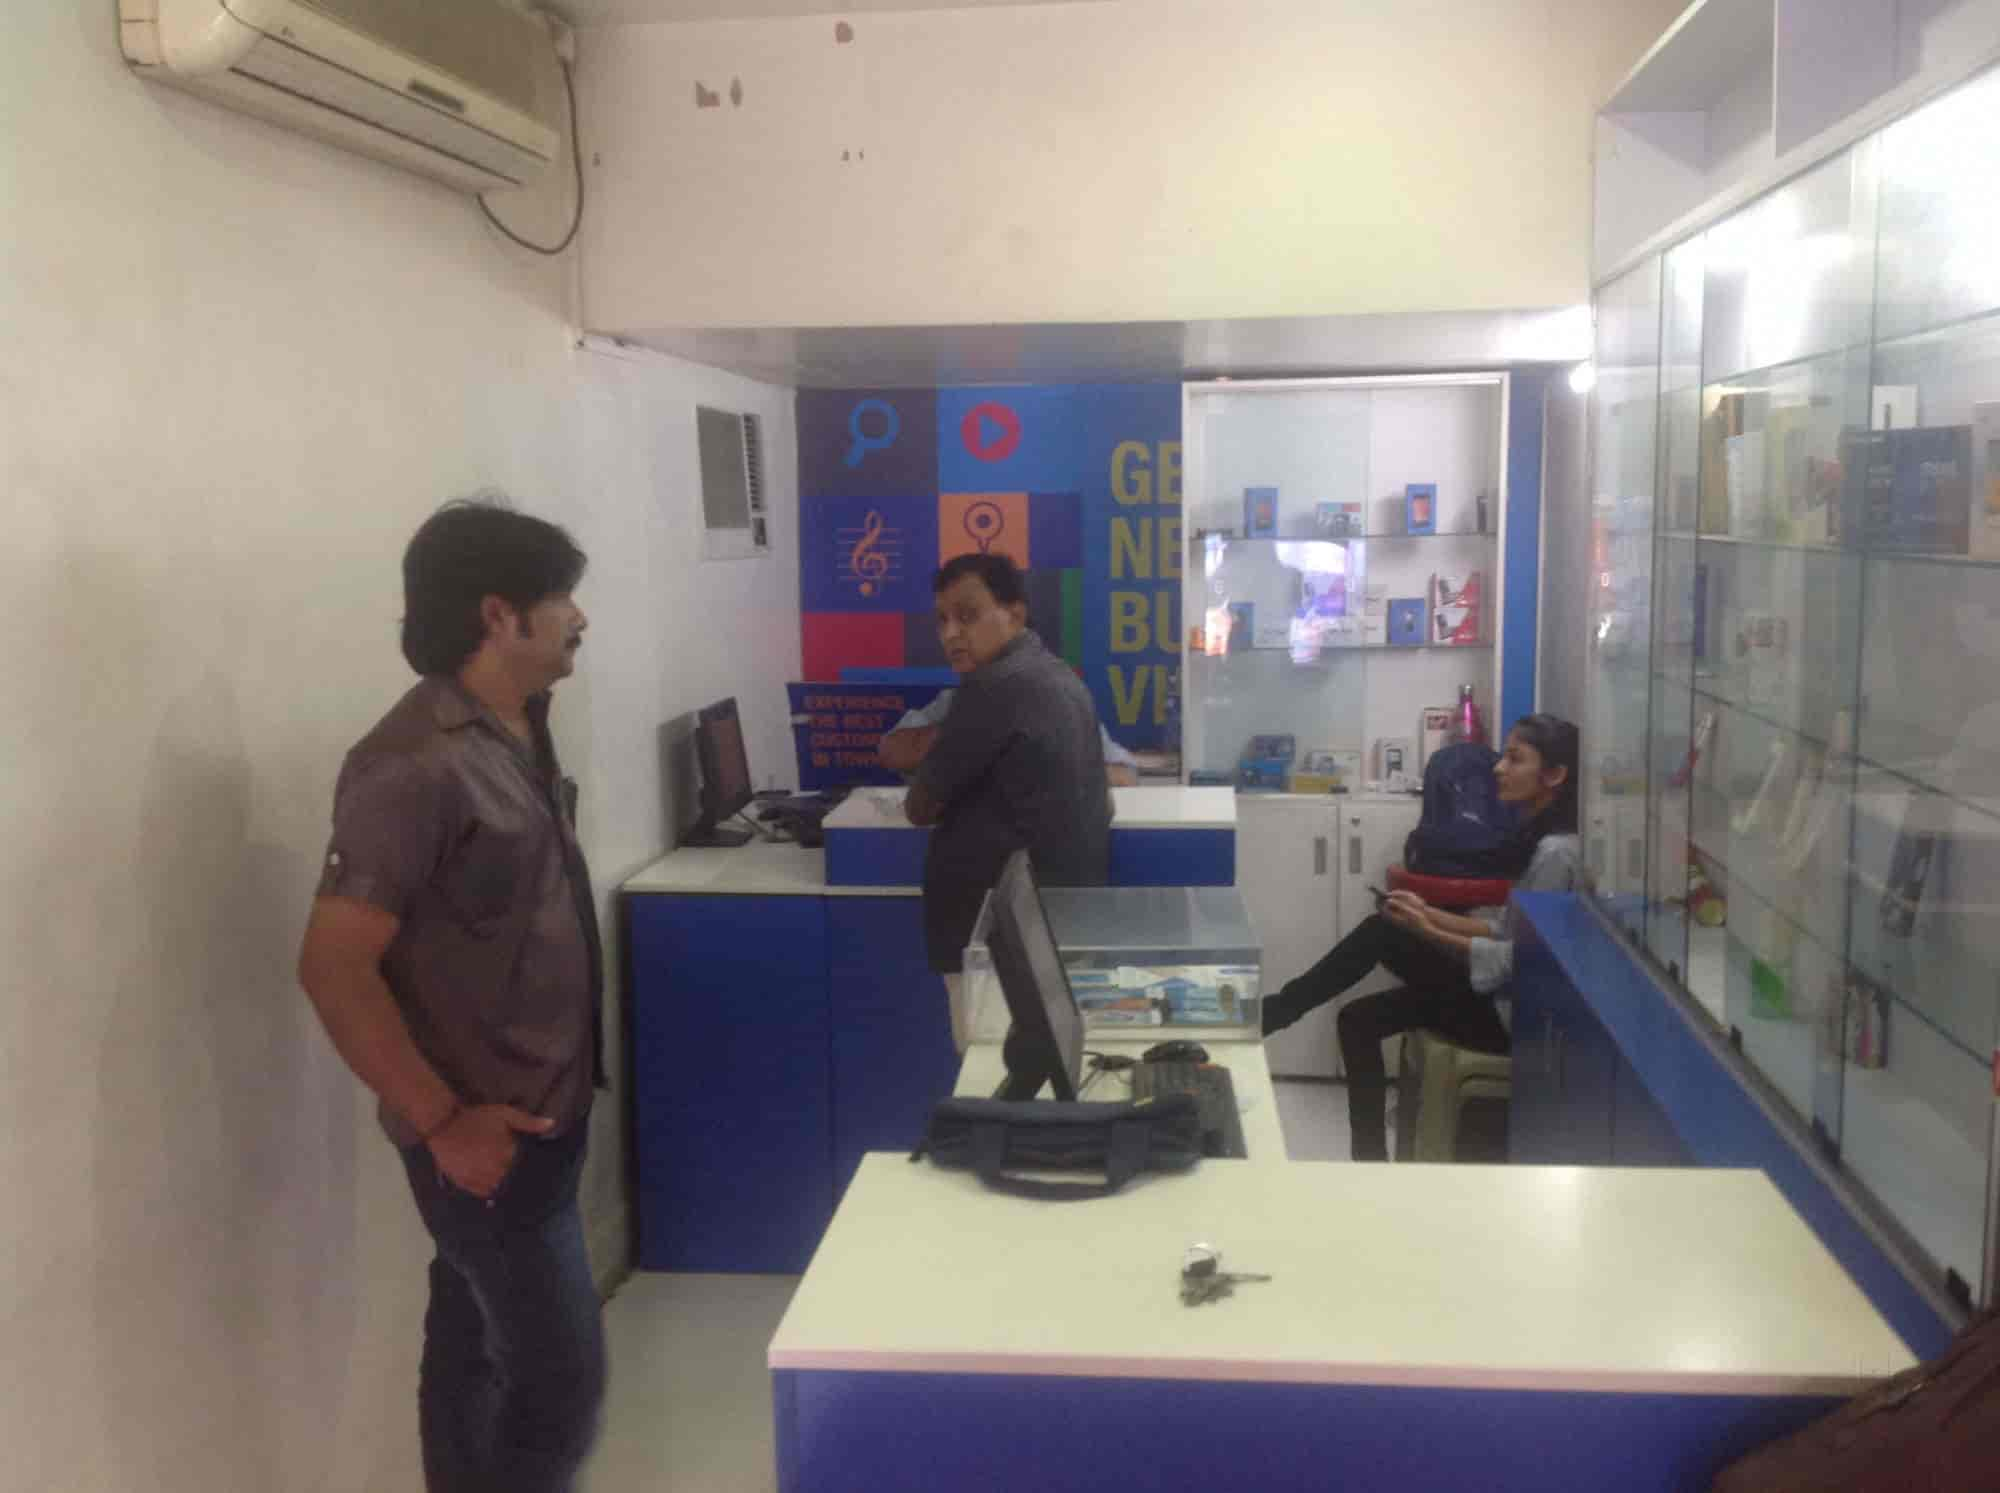 Jio Digital Reliance Mobile Store, Kothrud - 4g Mobile Phone